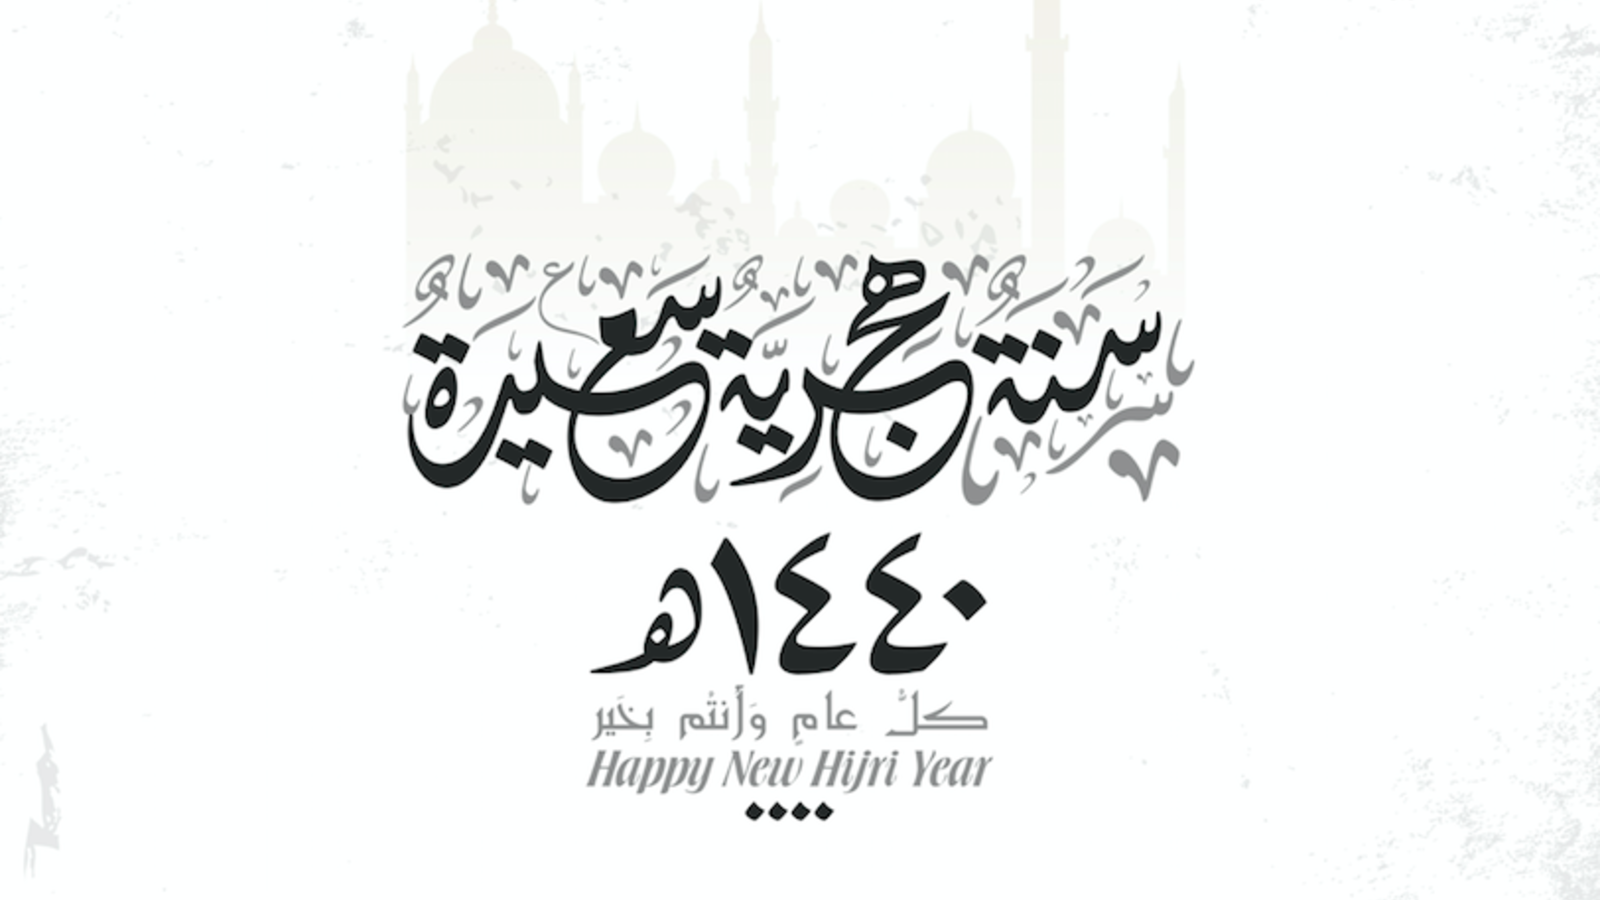 Muslims on Twitter Celebrate Hijri New Year and Wish for